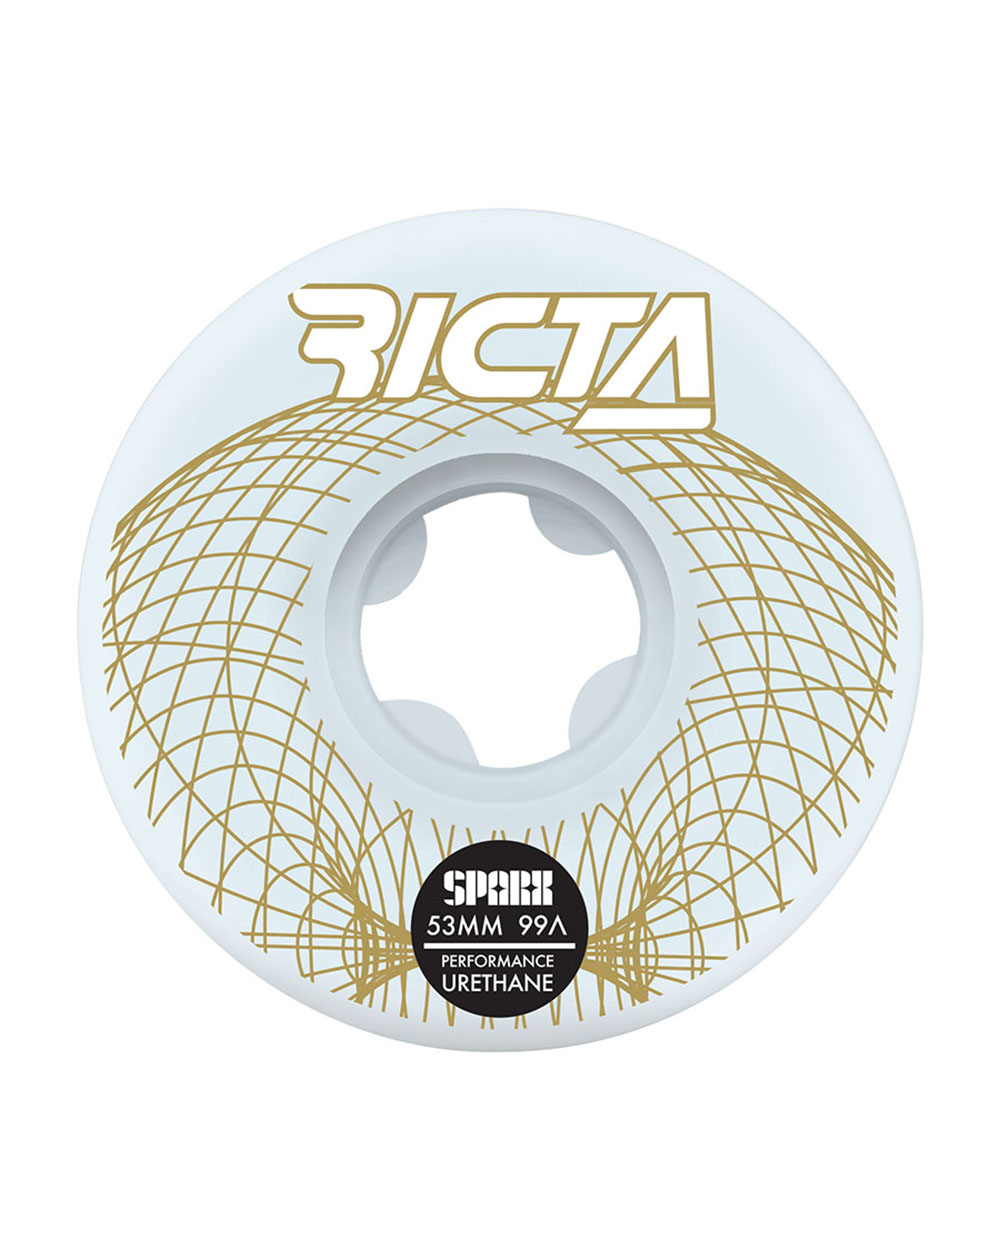 Ricta Wireframe Sparx 53mm 99A Skateboard Wheels pack of 4